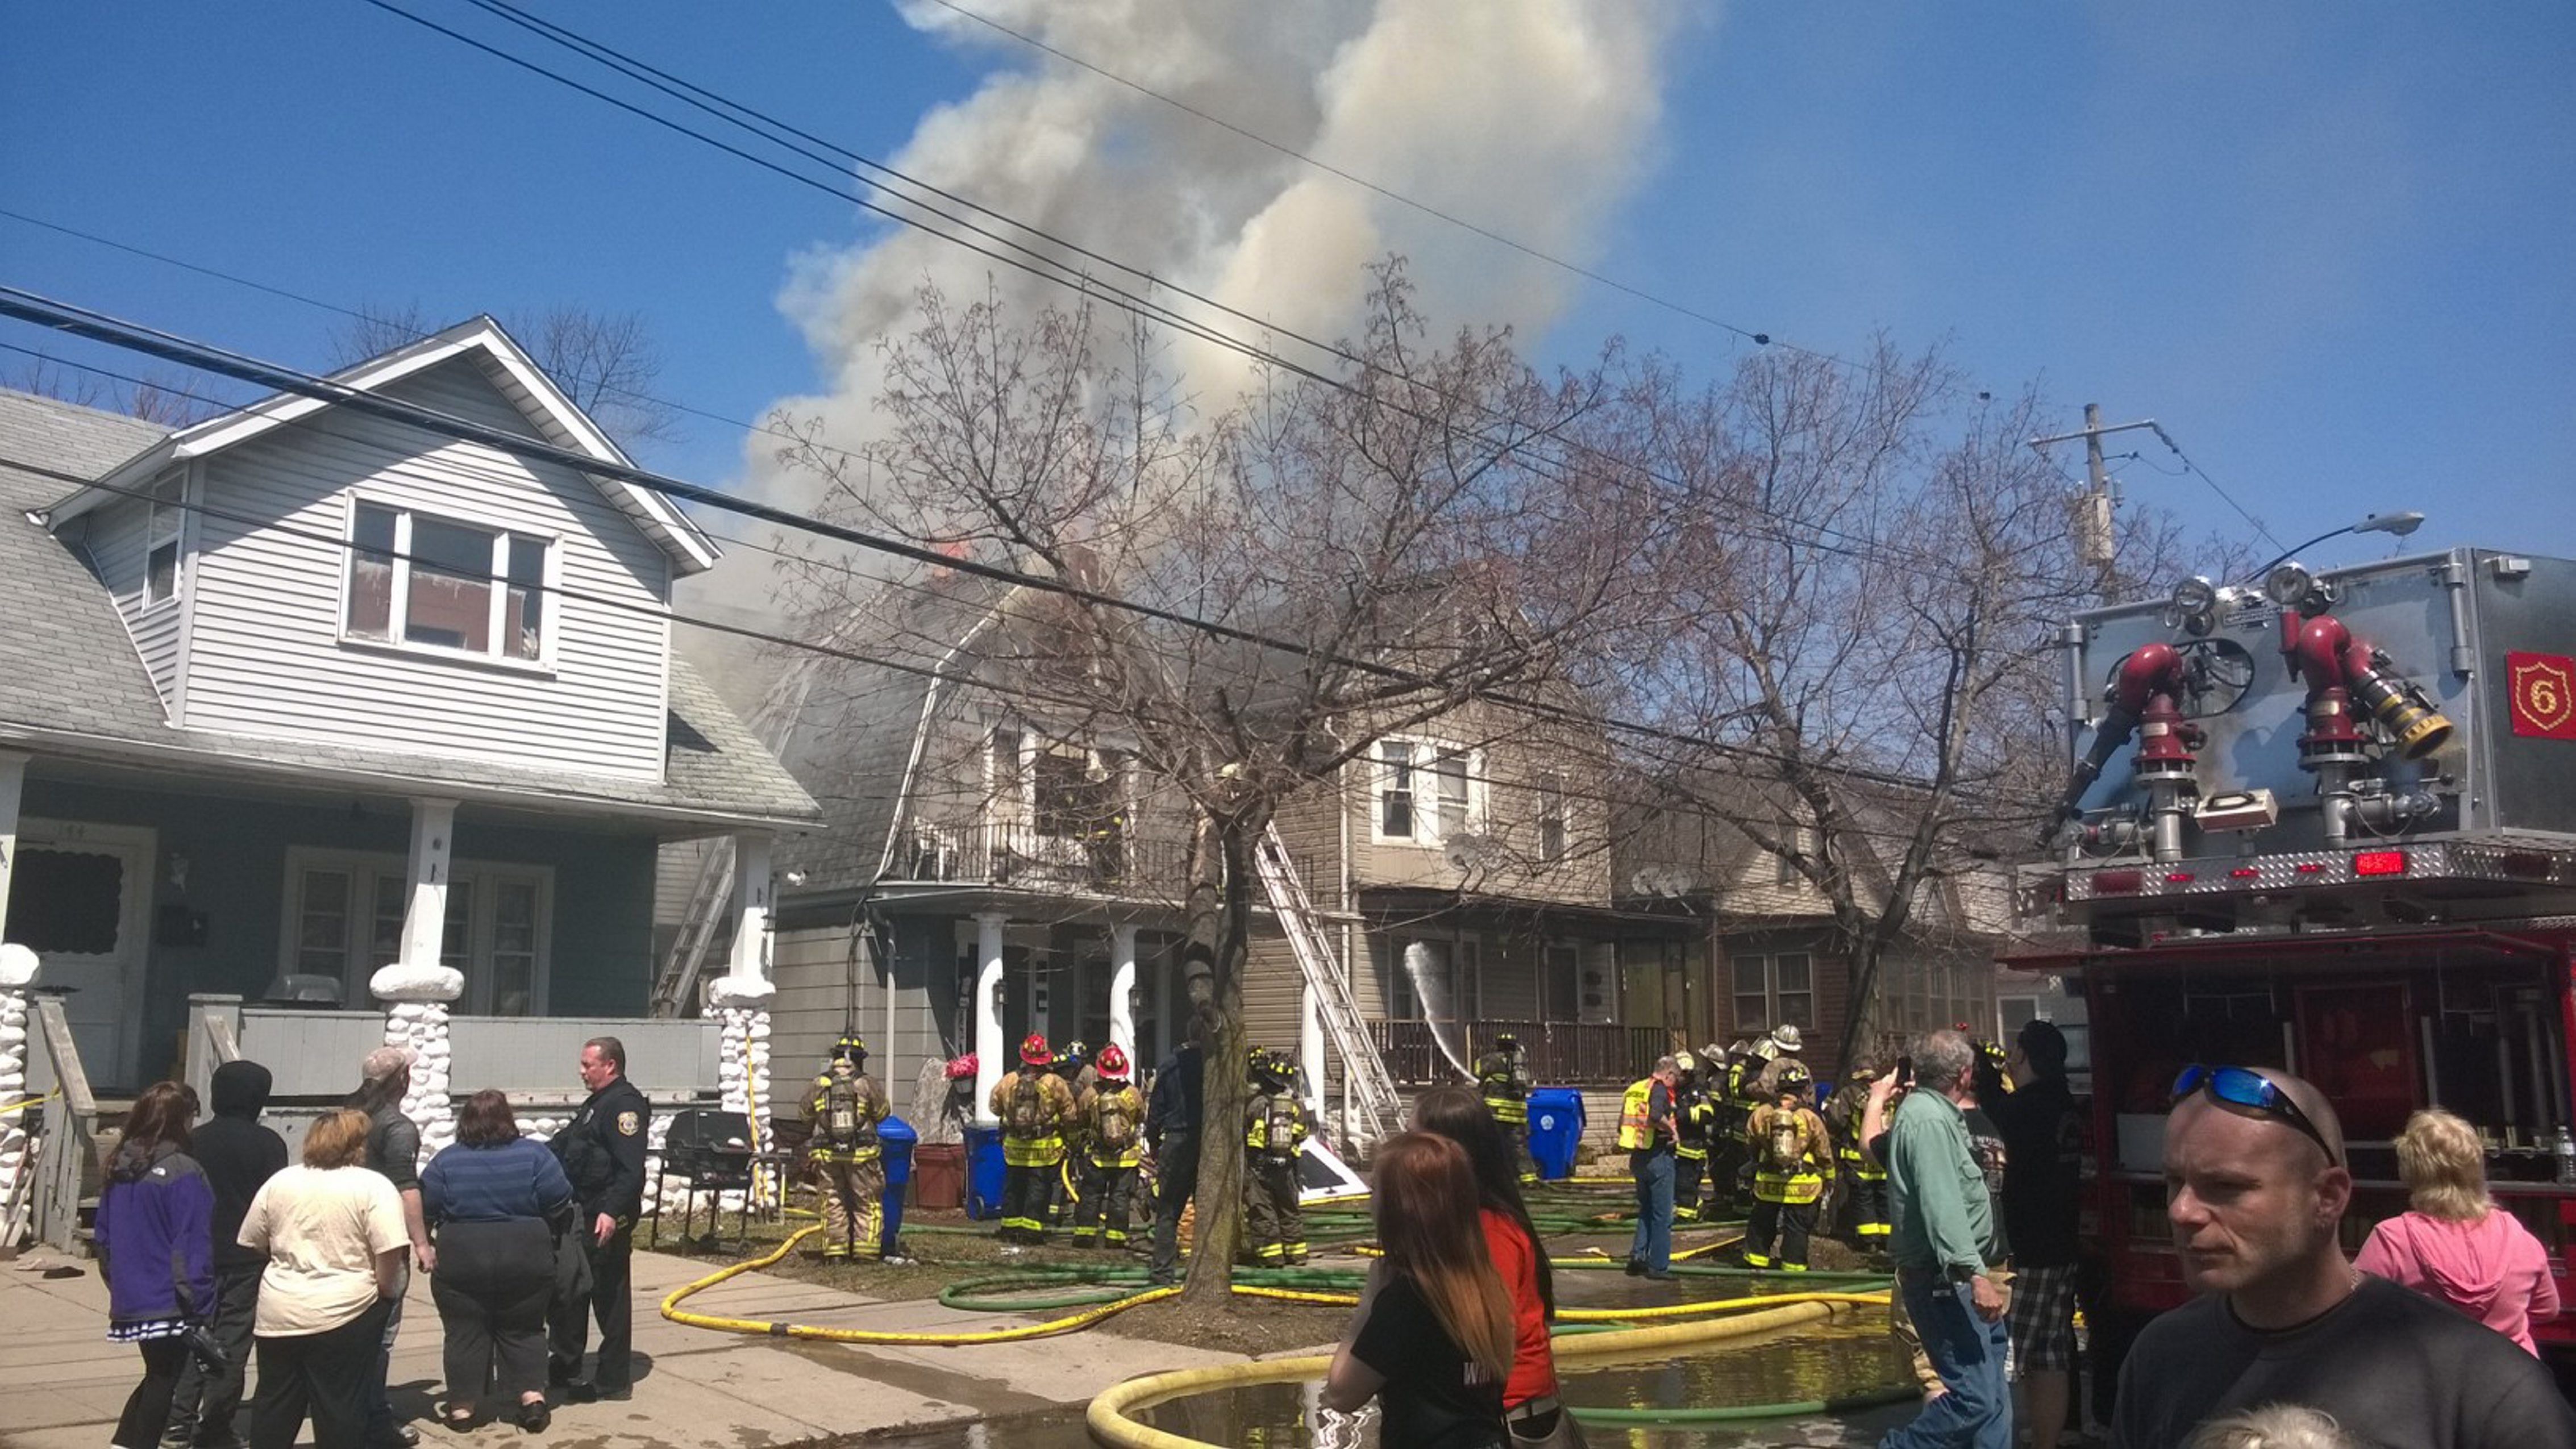 Flames shoot from the roof of a burning home on Burch Avenue in West Seneca Saturday.